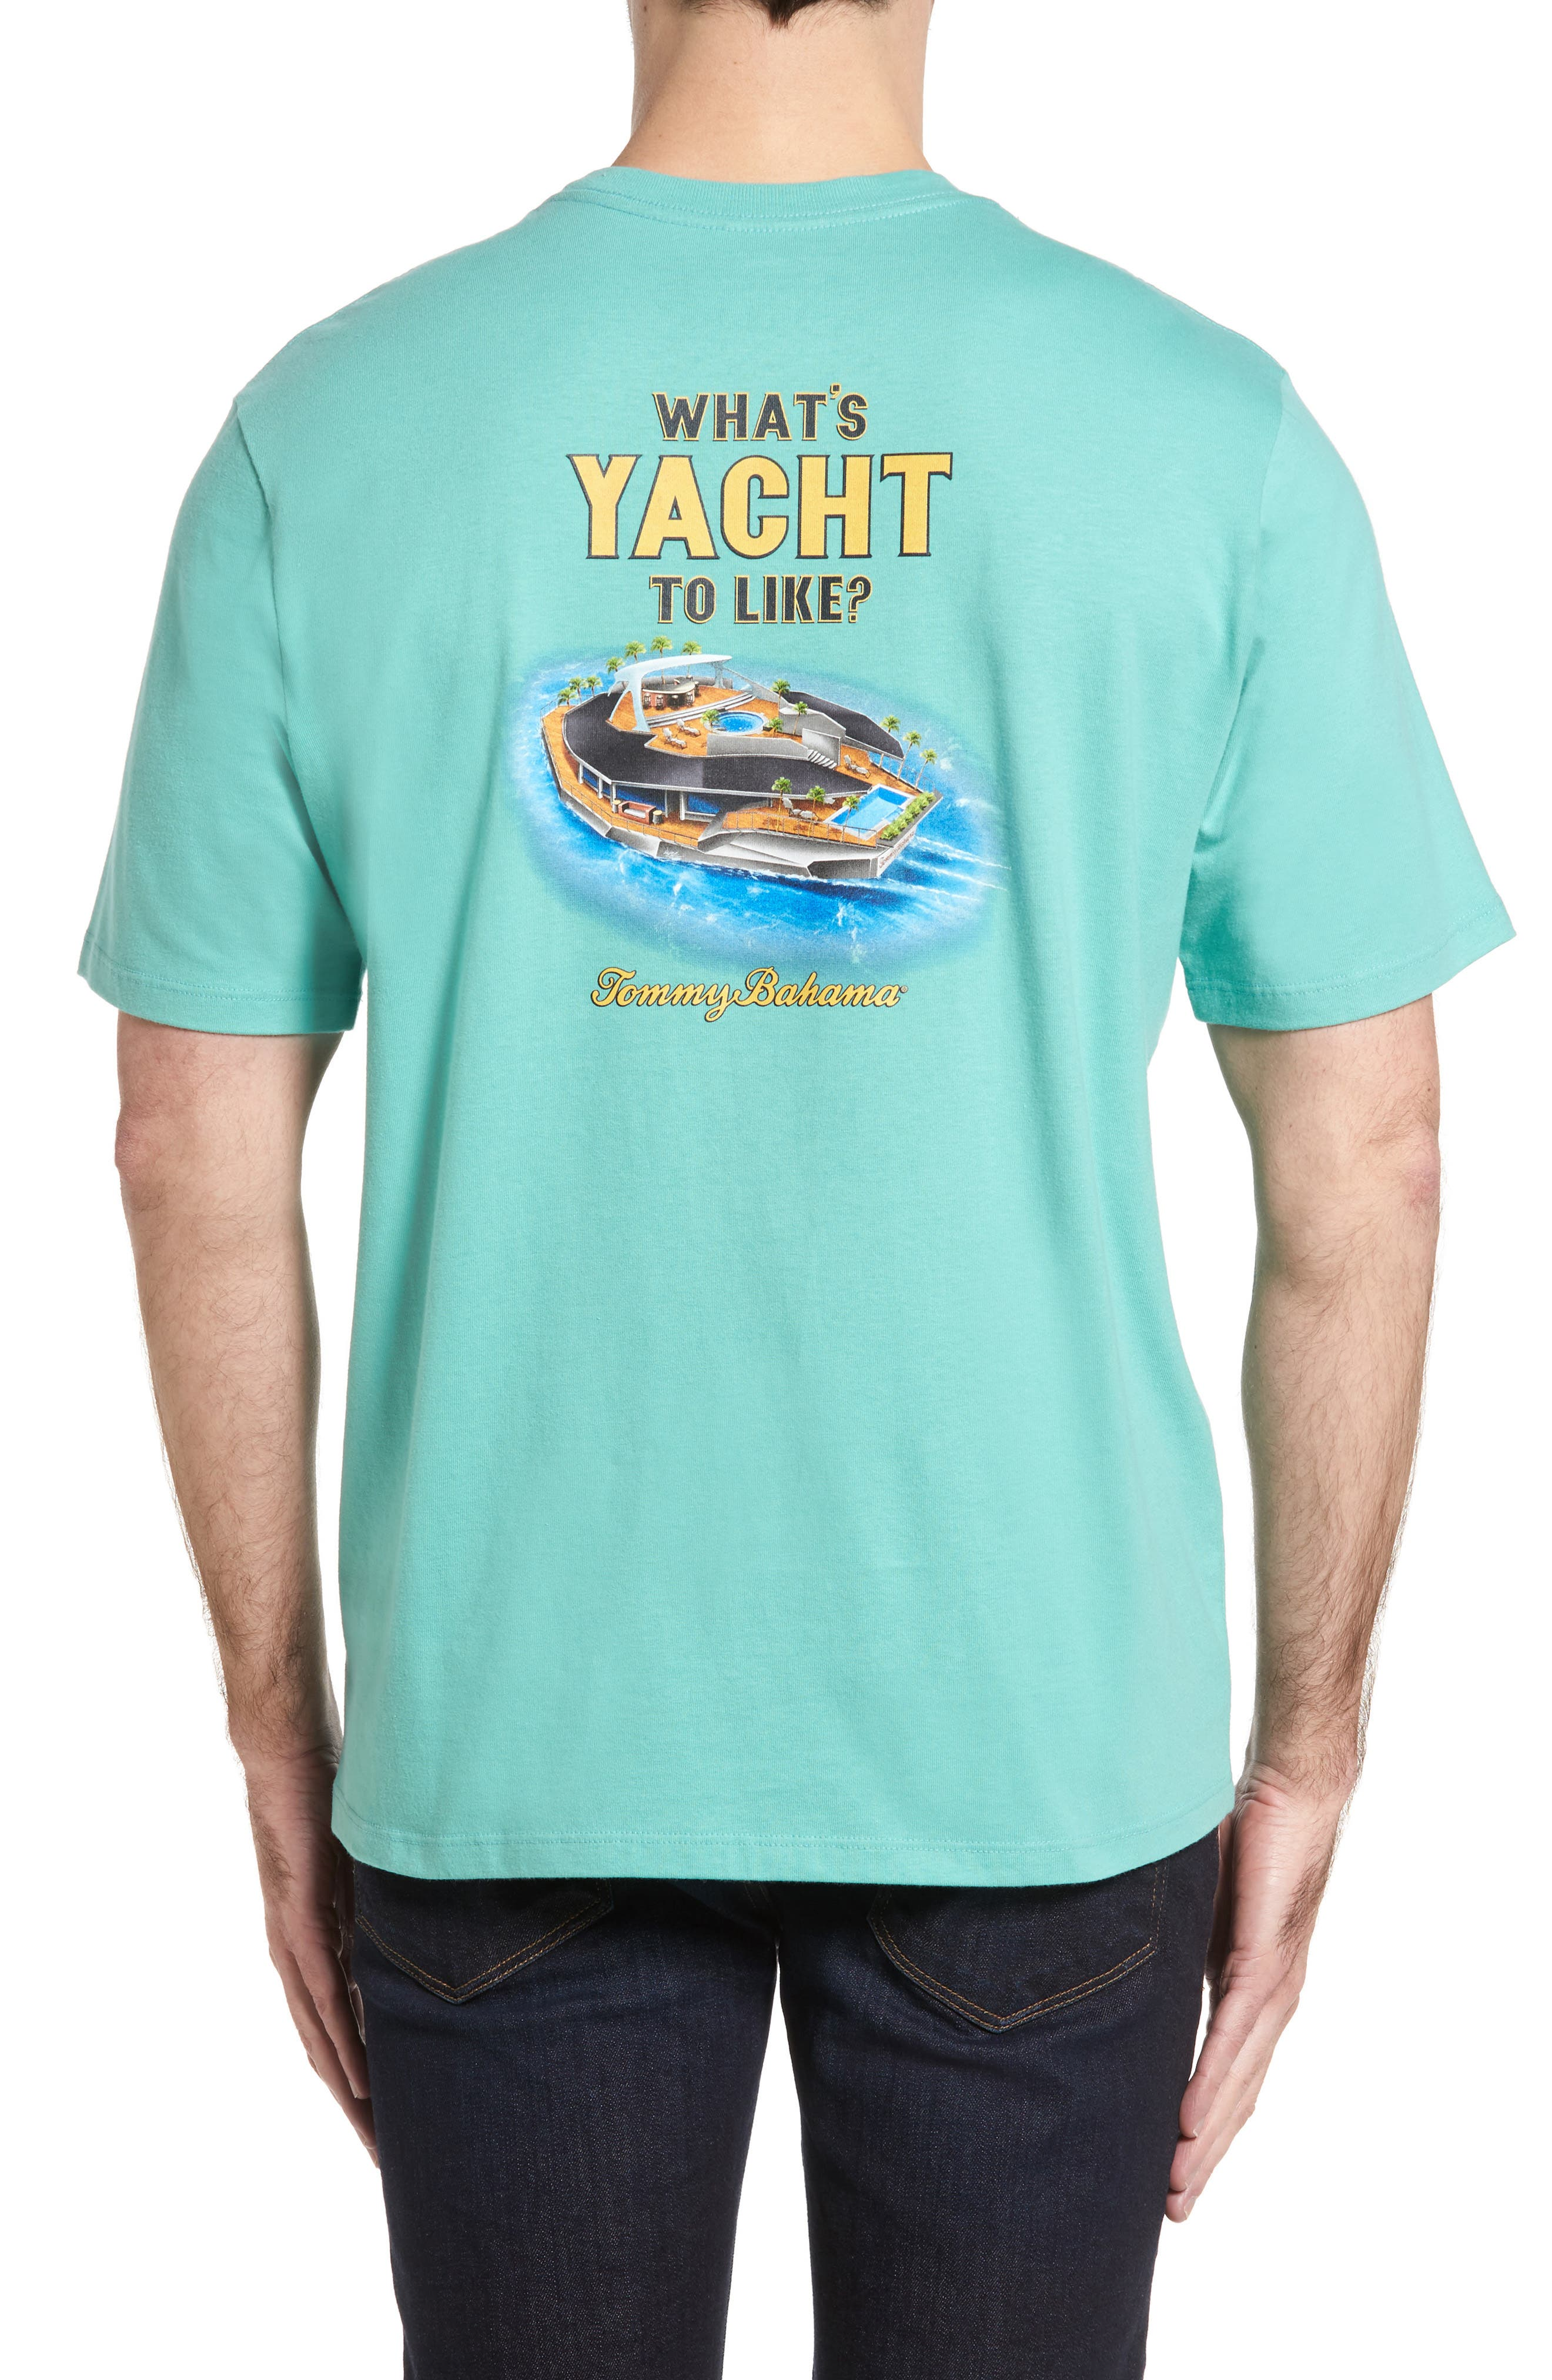 Main Image - Tommy Bahama What's Yacht to Like T-Shirt